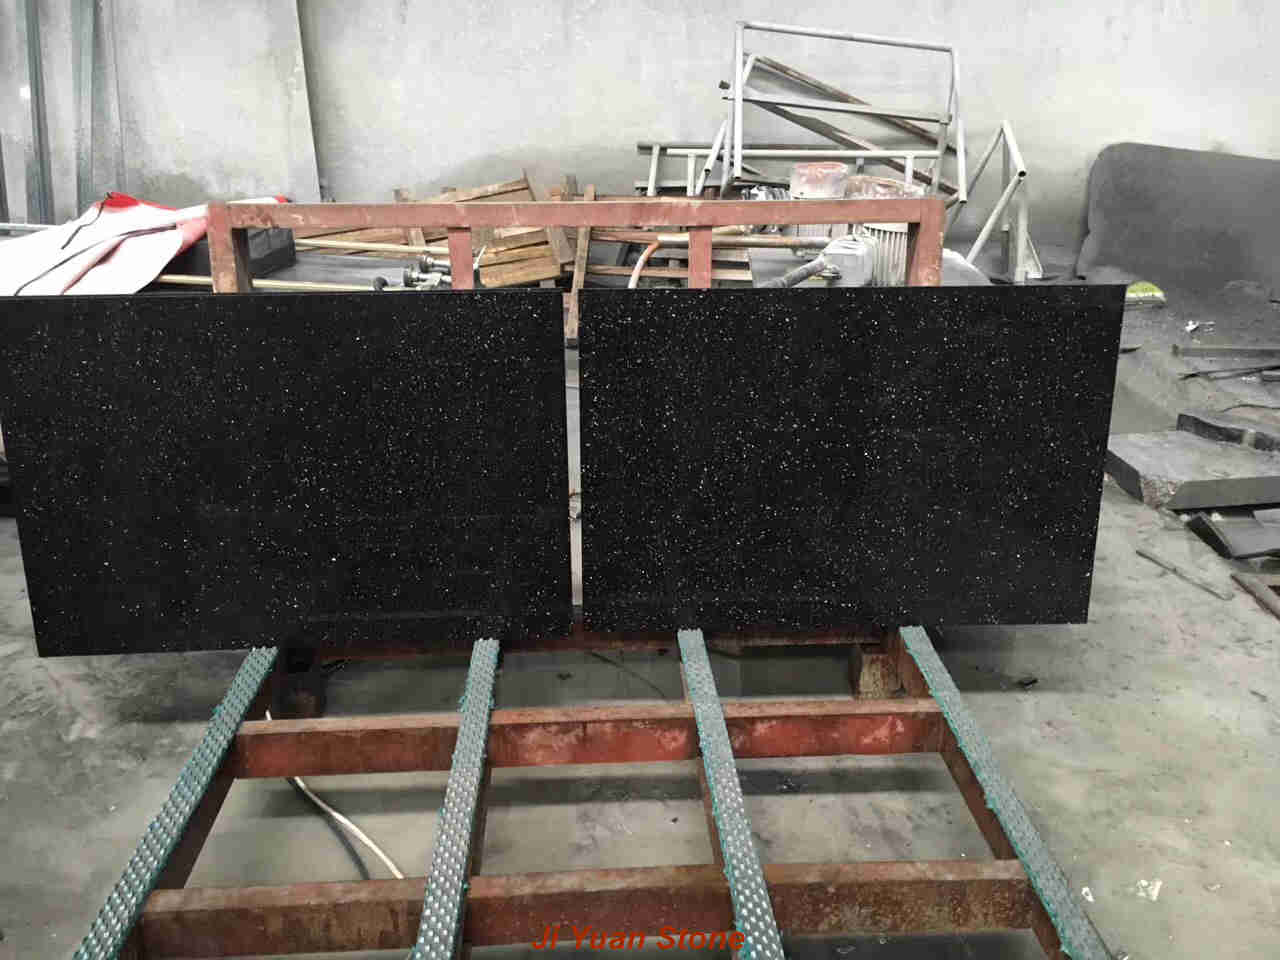 Technological level of star galaxy granite tiles mine resource development